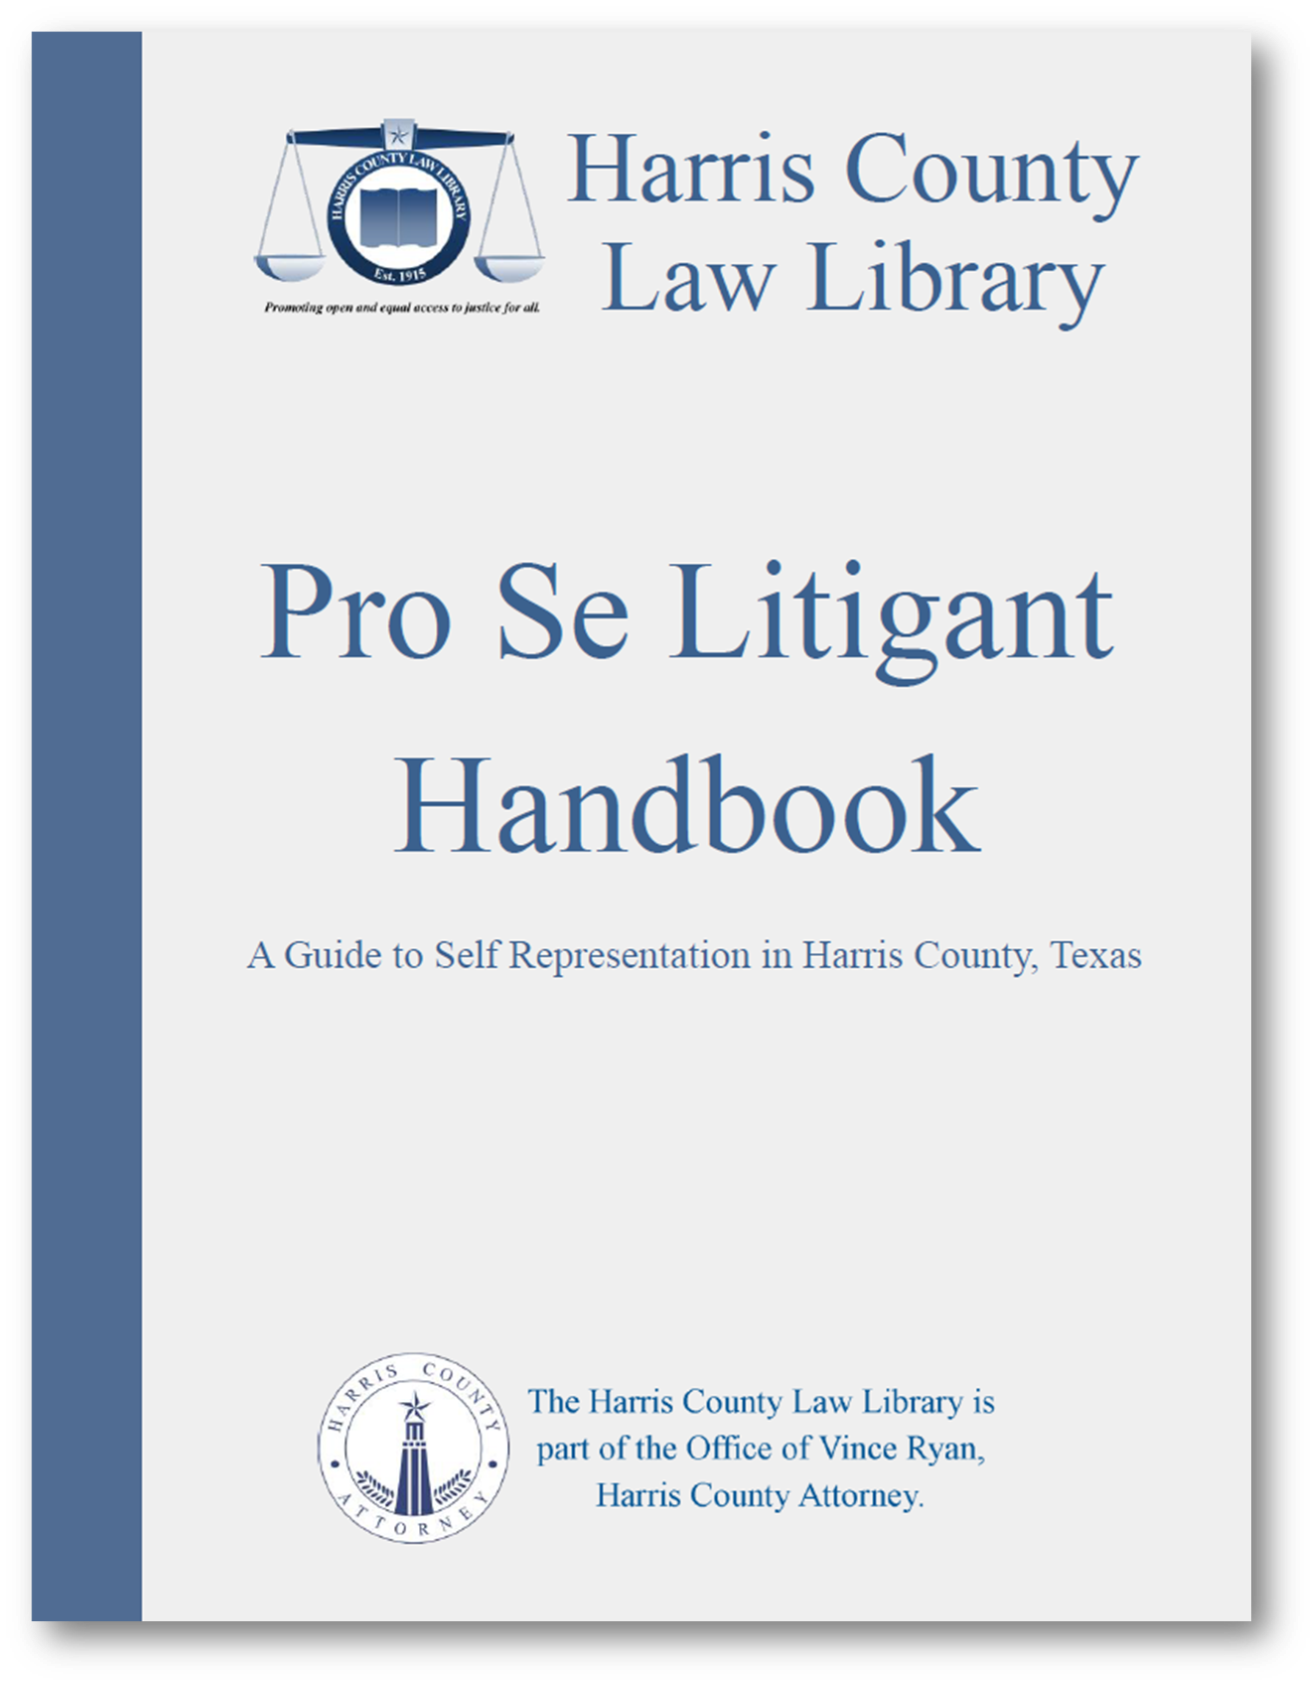 Harris County Law Library  Pro Se Litigant Handbook  A Guide to Self-Representation in Harris County, Texas.  The Harris County Law Library is a part of the Office of Vince Ryan, Harris County Attorney.